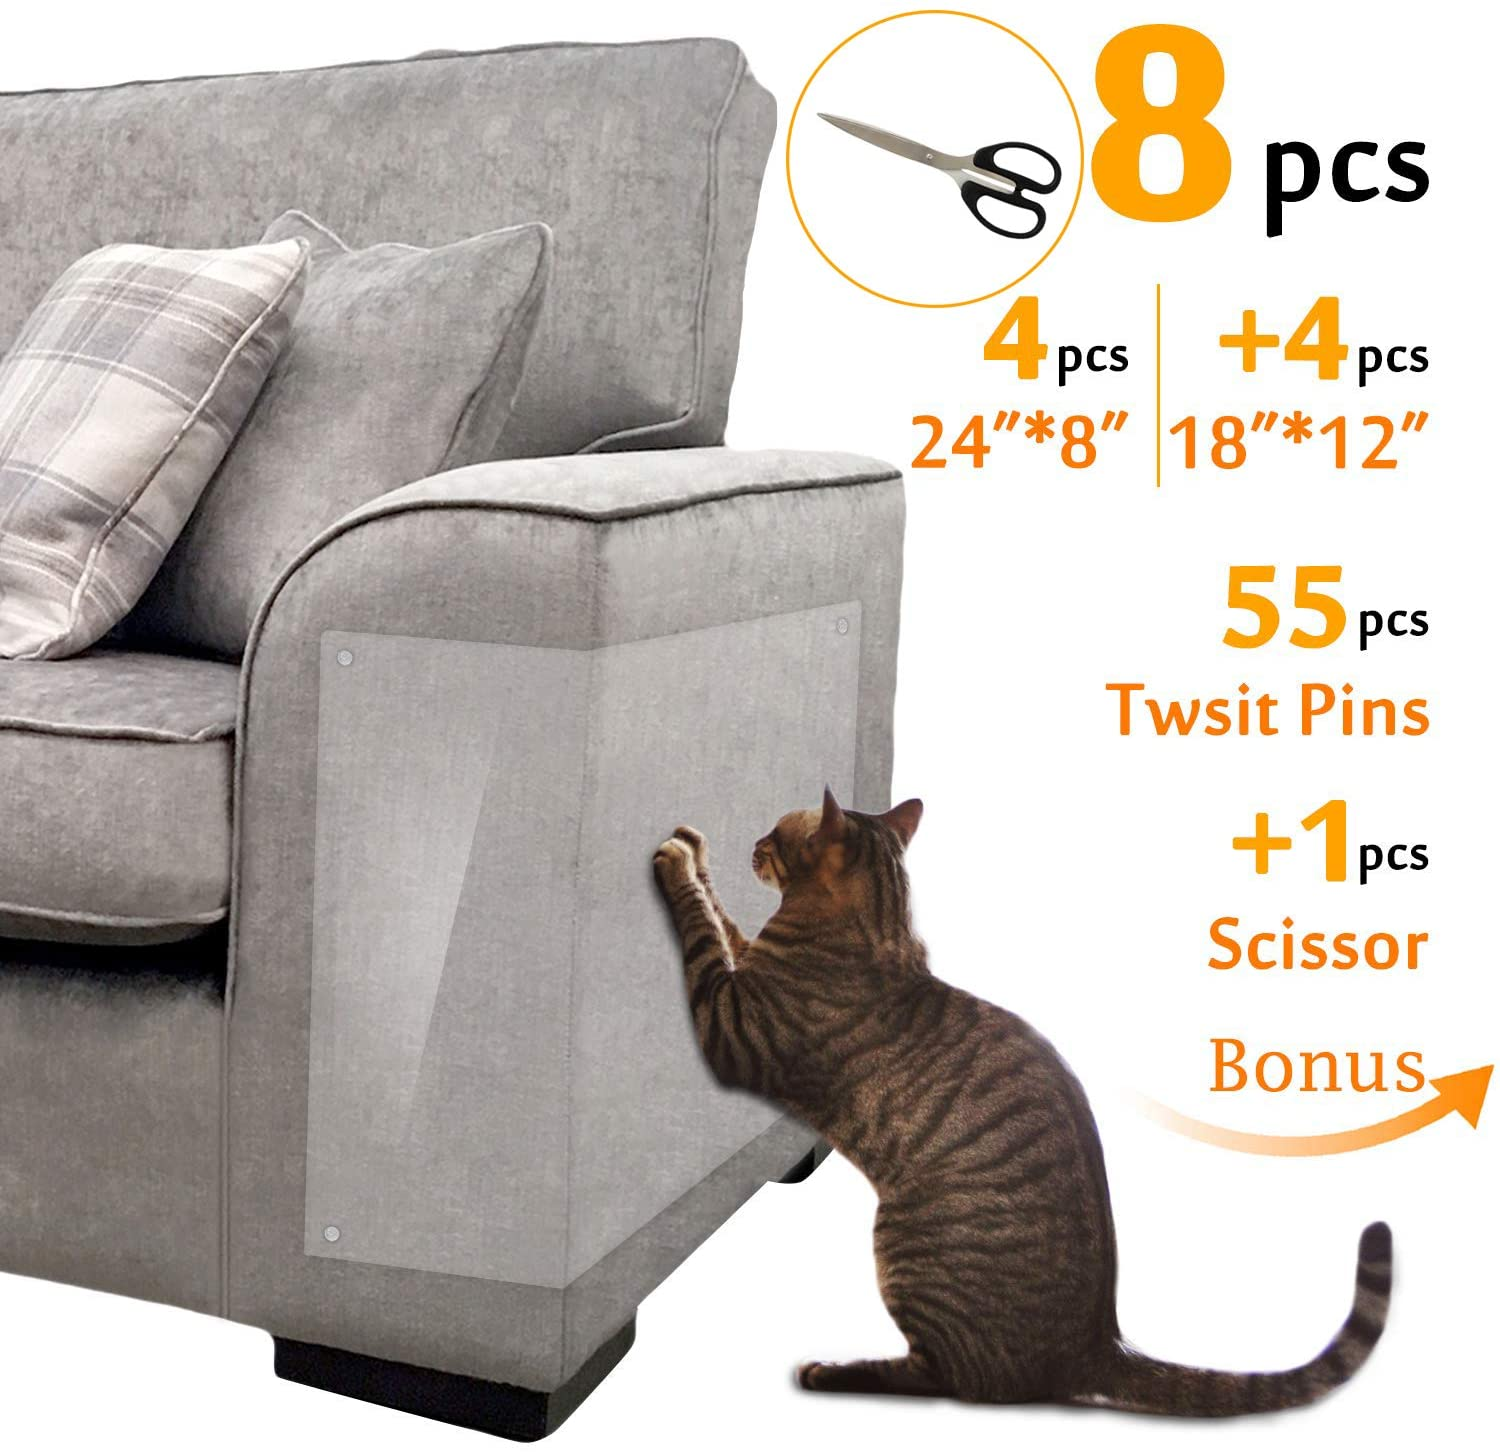 Hakes Toys Furniture Protectors from Cats |Couch Cover |Scissors of Bonus |4pcs 24''L8''W+4pcs 18''L12''W+55pcs Twist Pins |Best Cat Scratch Deterrent for Leather Sofa Door and Chair